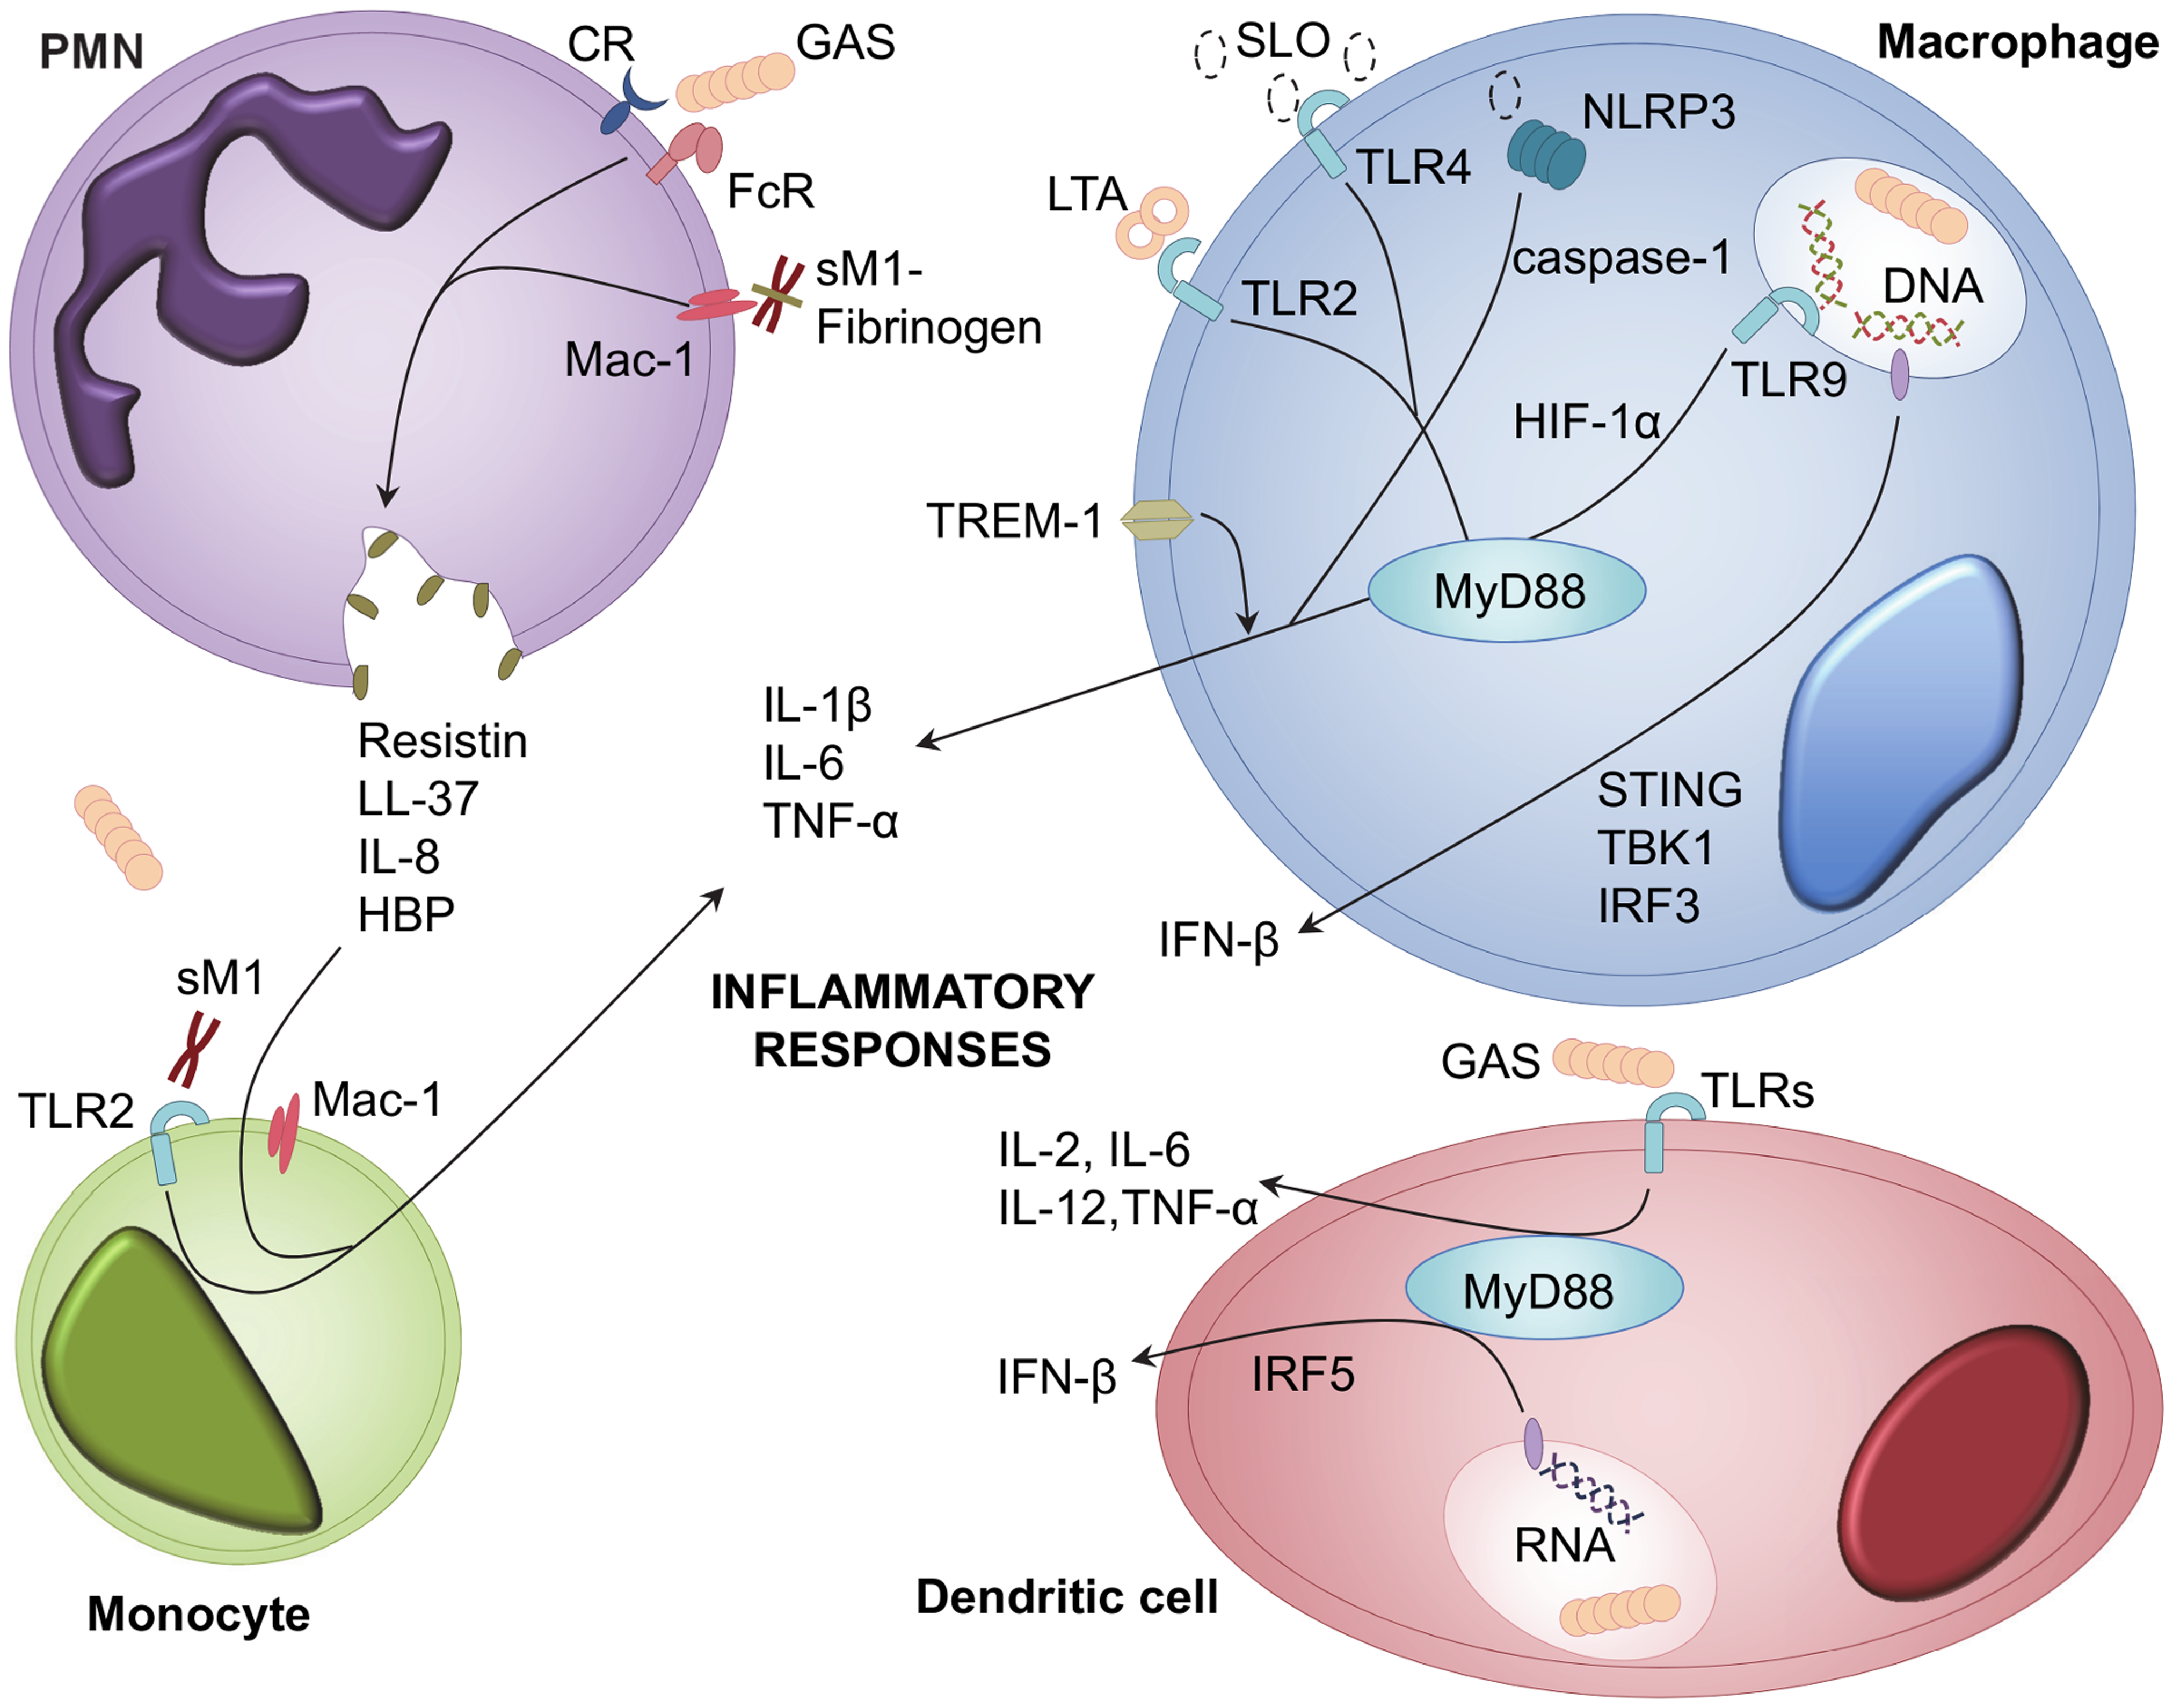 Cellular receptors and signalling pathways involved in GAS recognition and inflammatory mediator release.